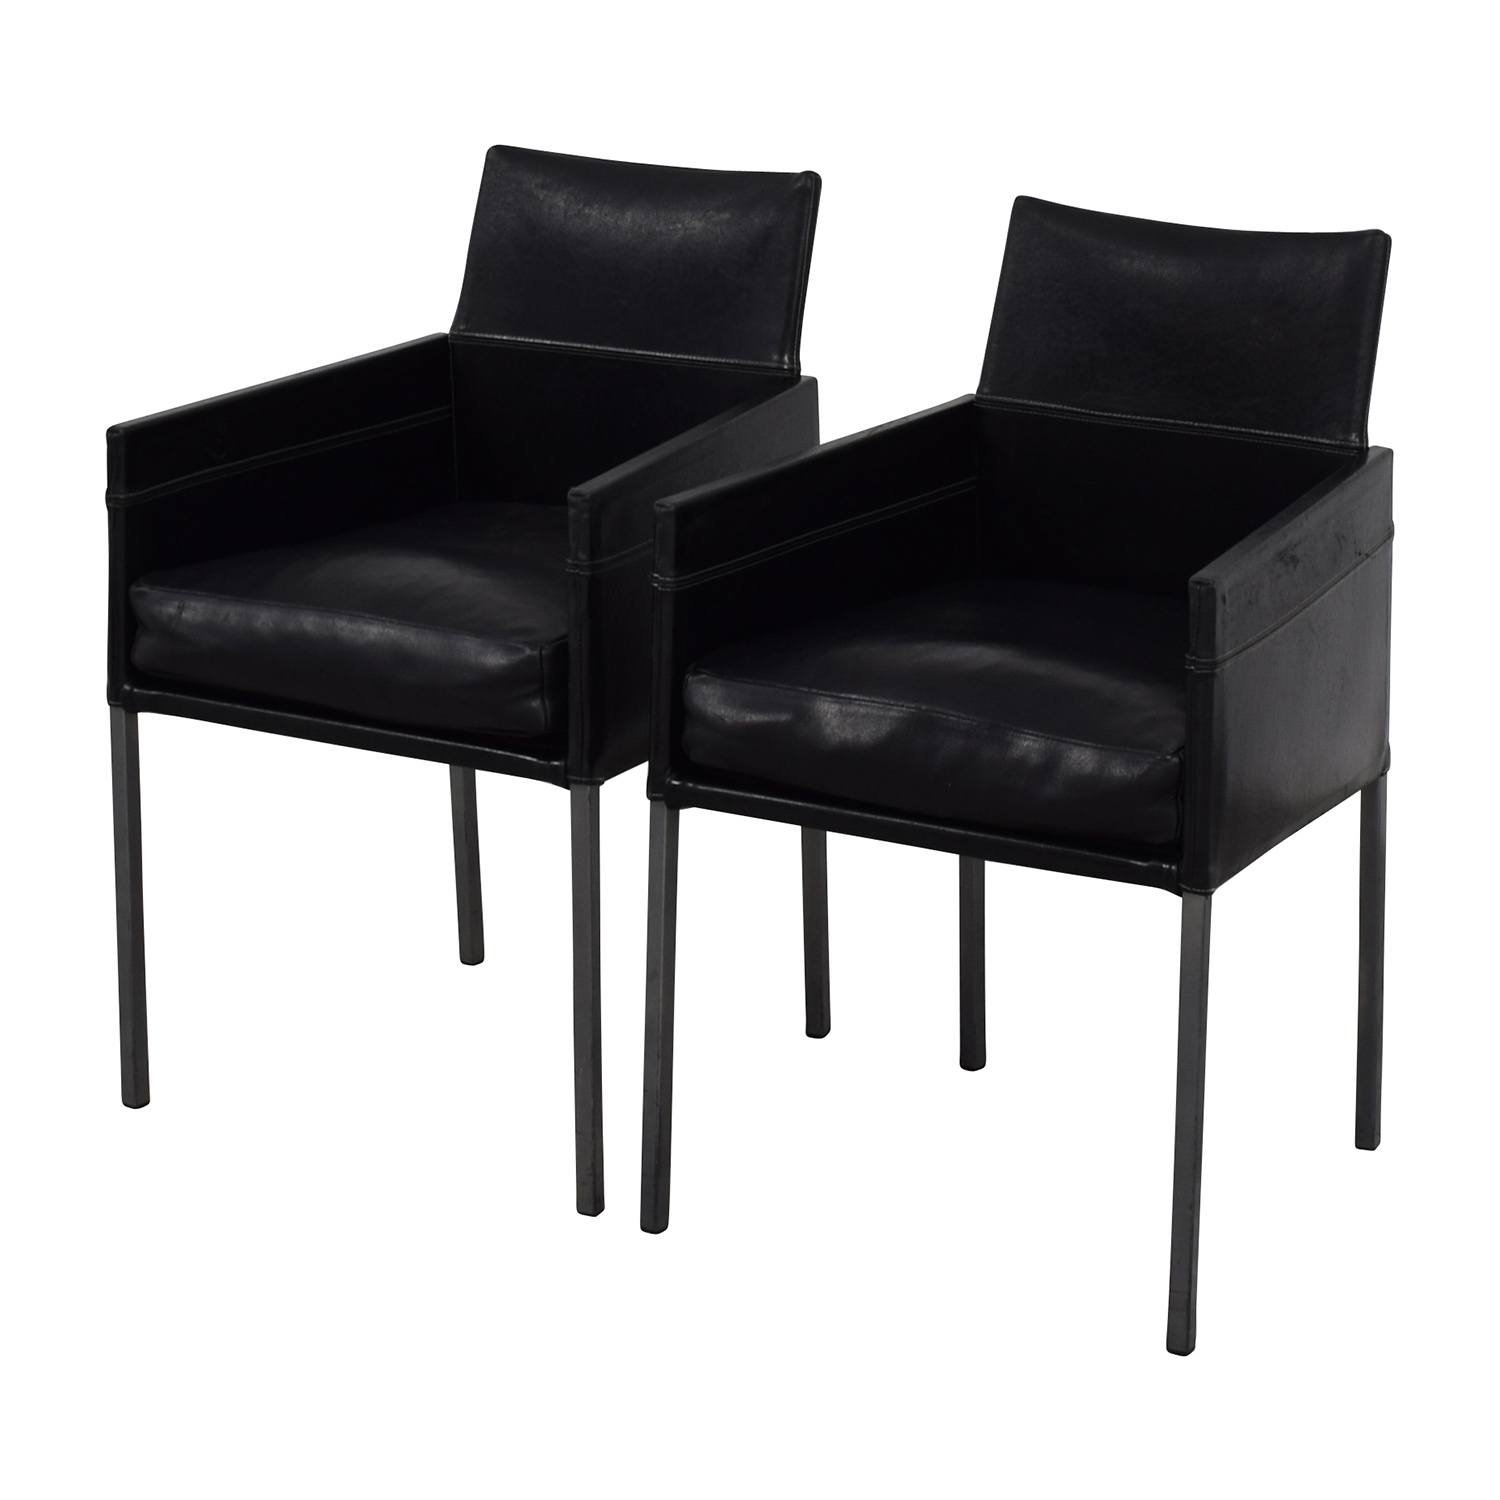 Design Within Reach Design Within Reach Black Leather Chairs on sale